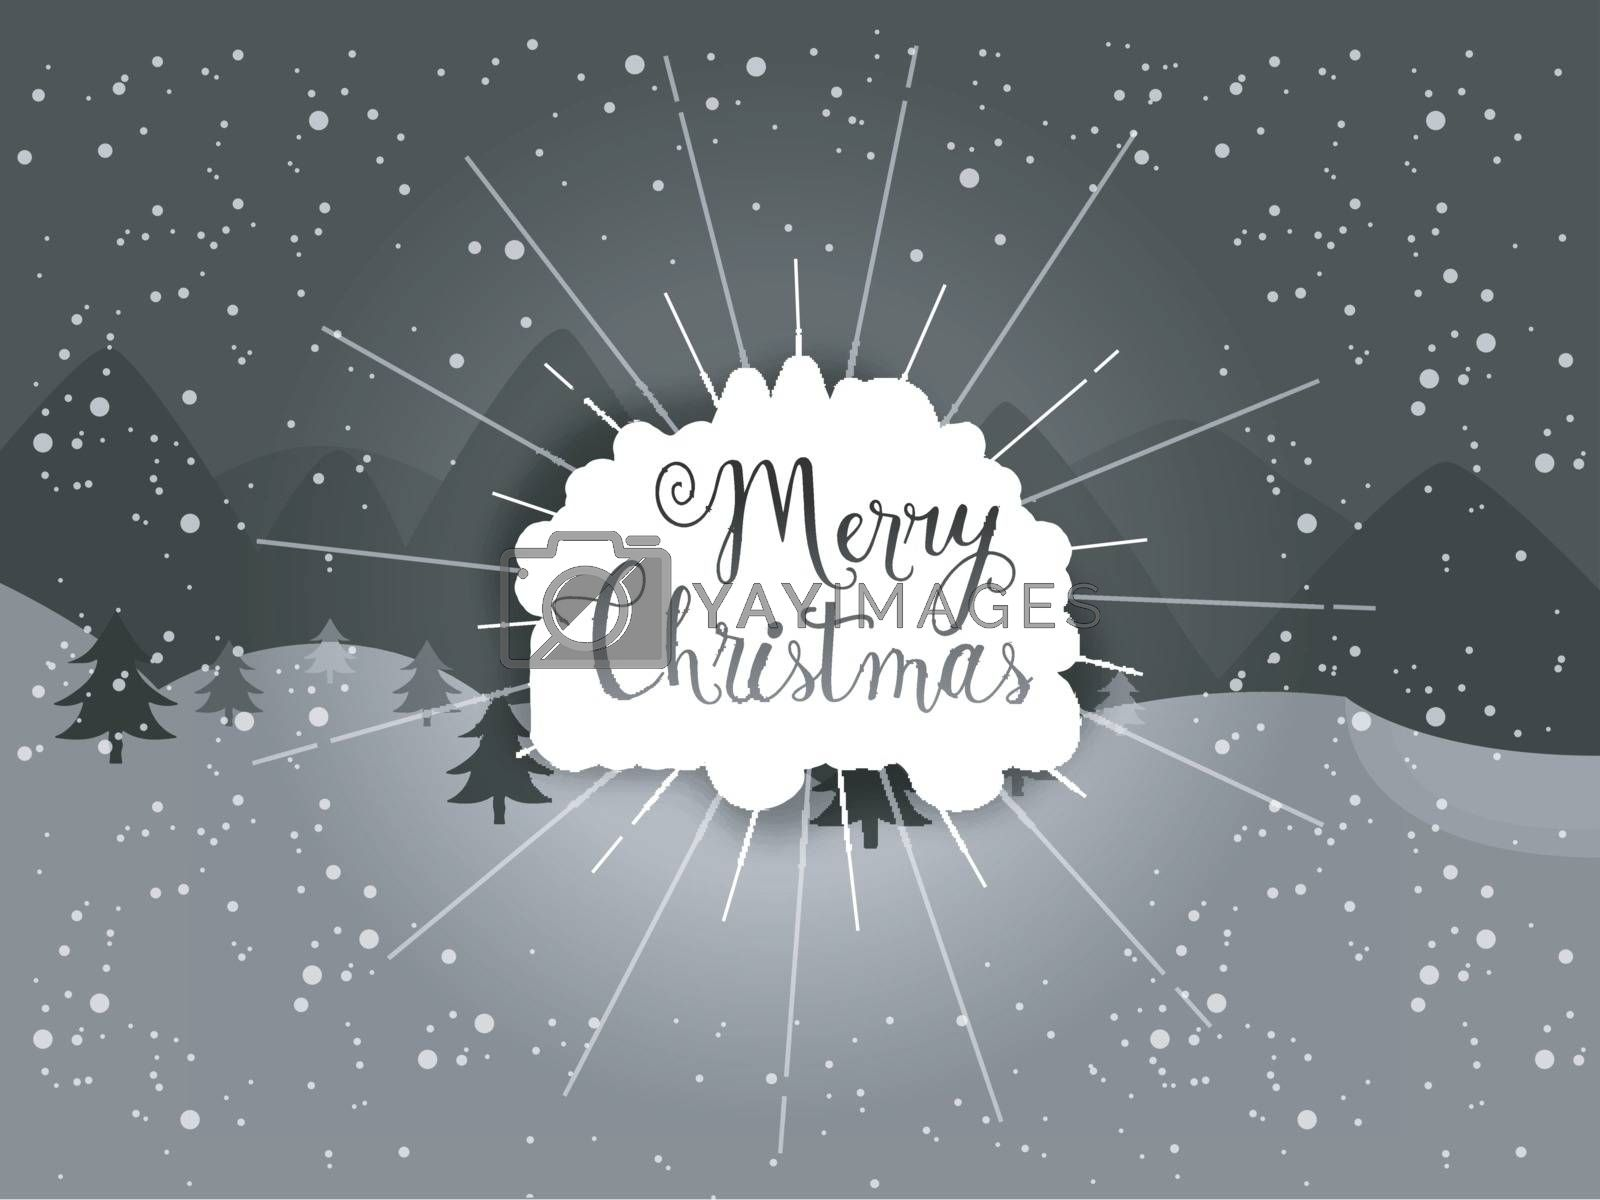 Greeting Card design with Stylish Text Merry Christmas on winter background.